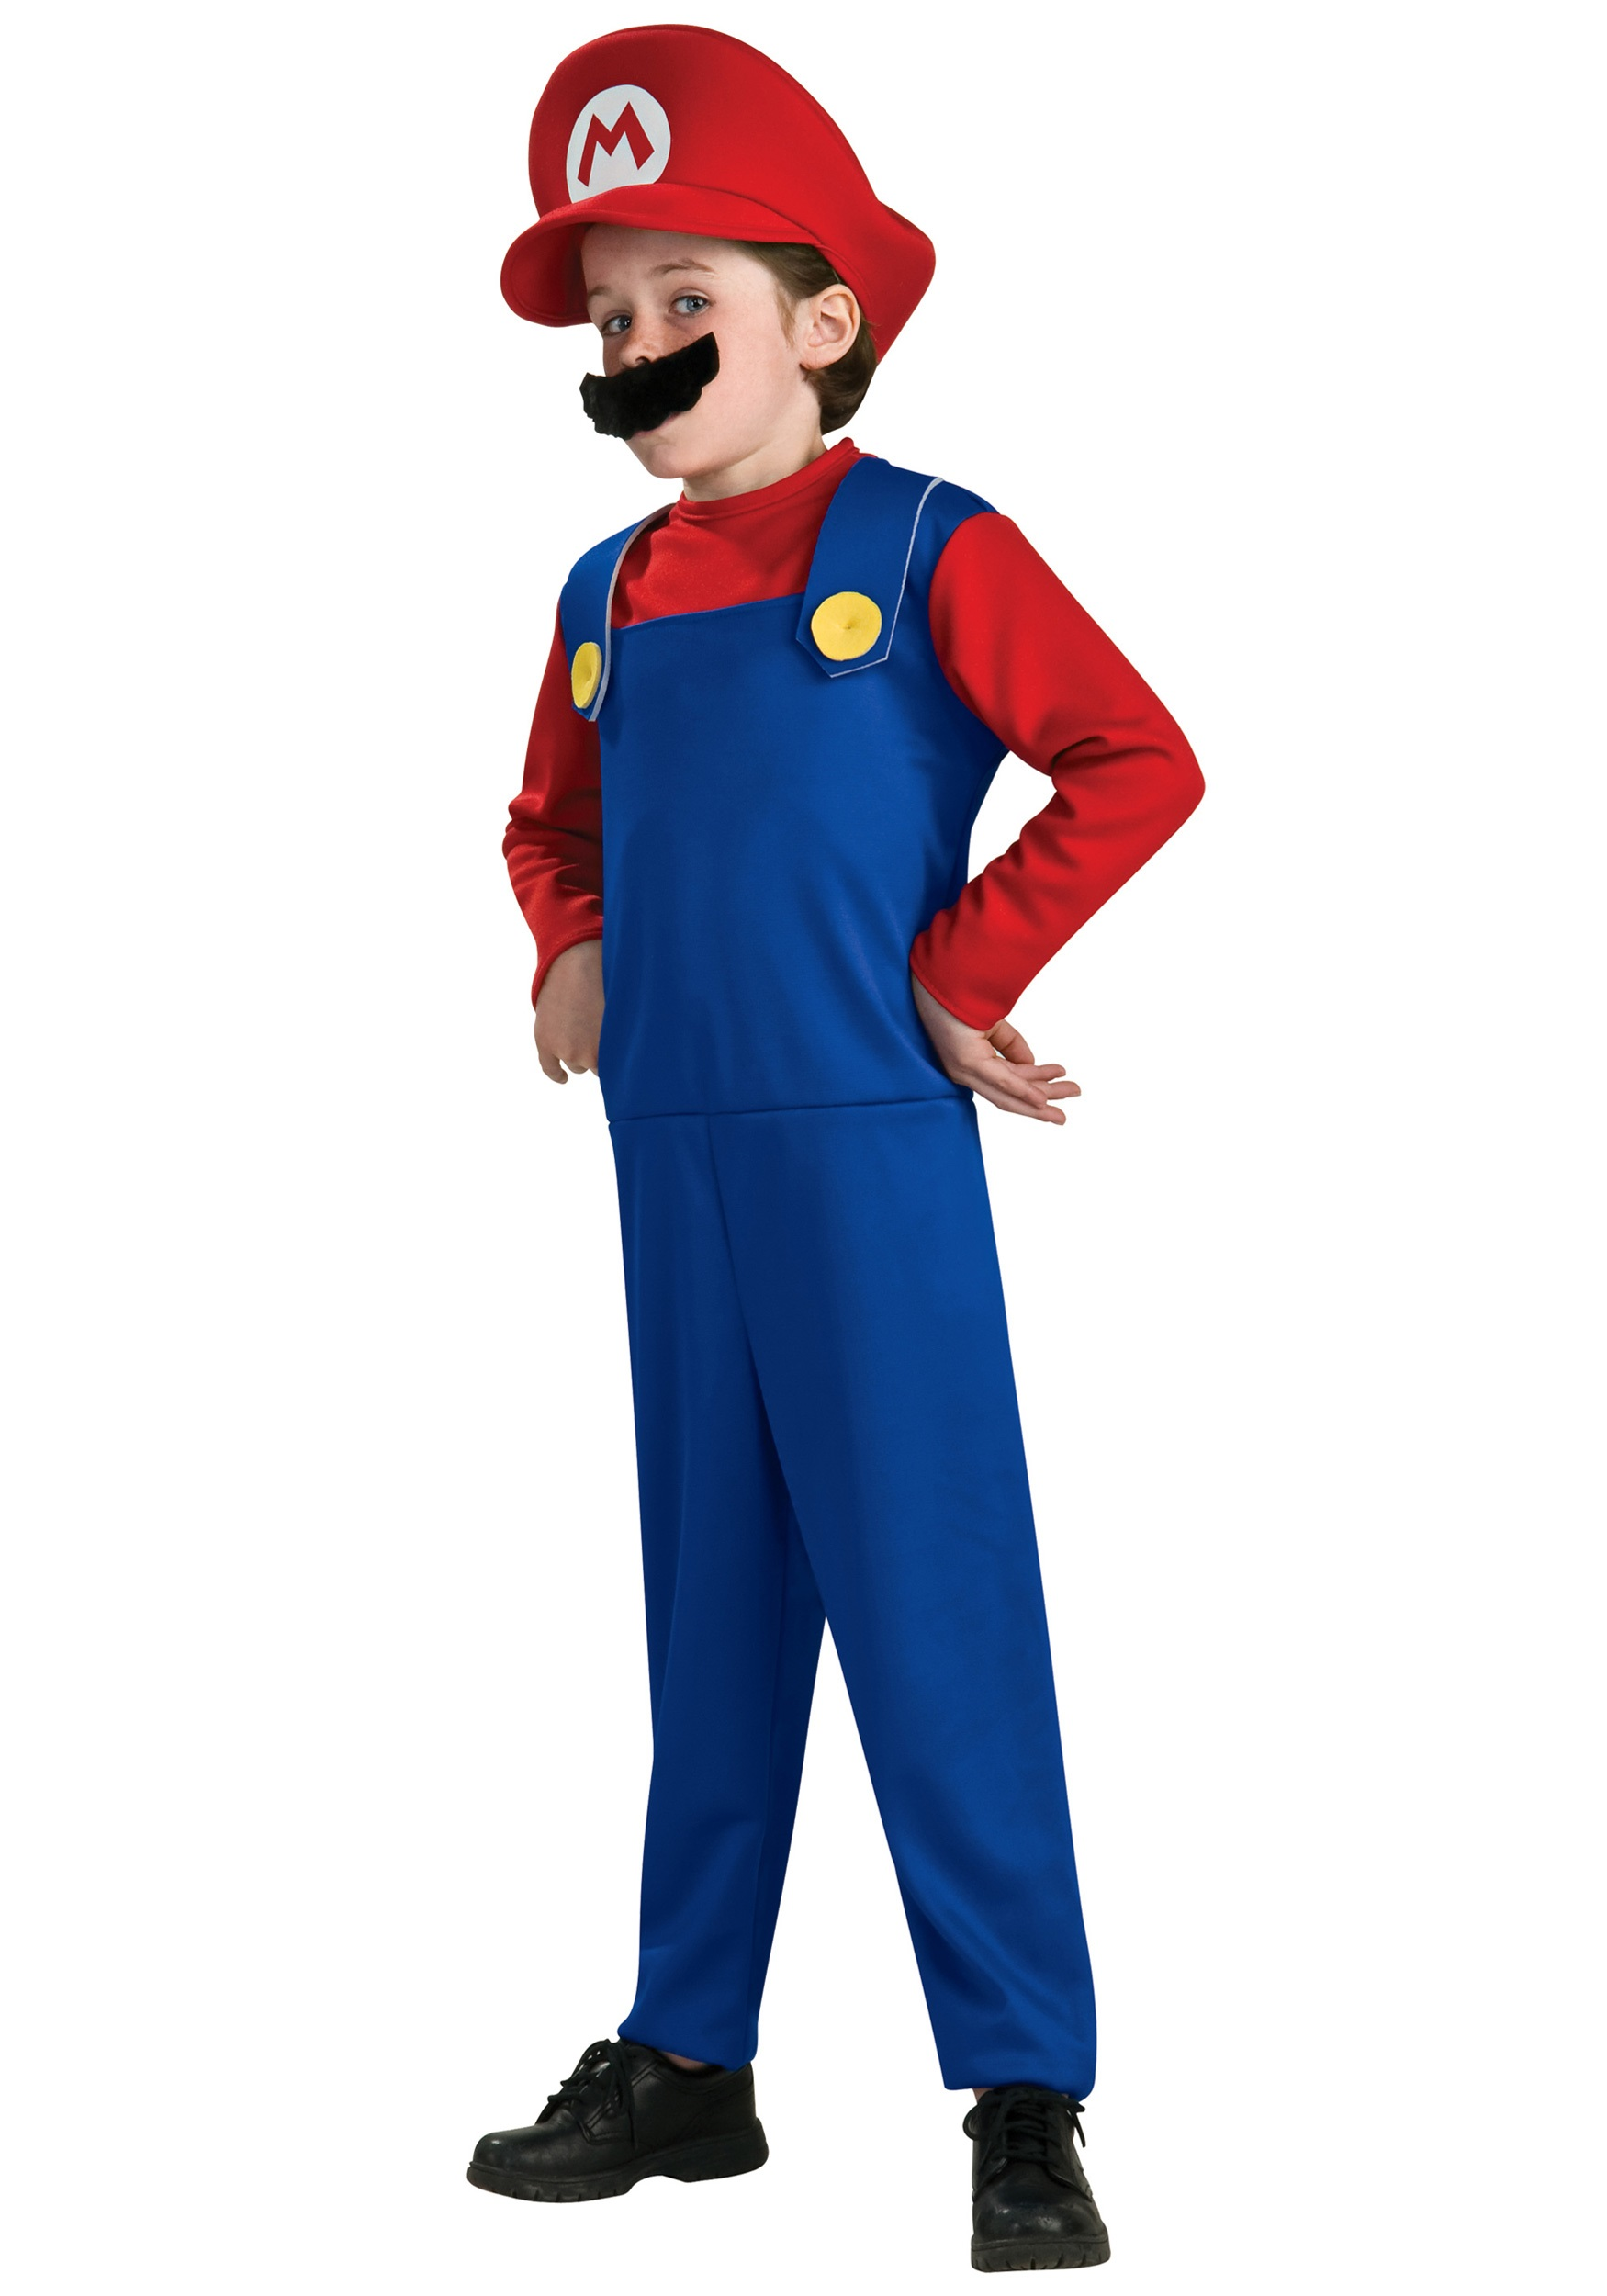 Child Mario Costume  sc 1 st  Halloween Costumes & Child Mario Costume - Halloween Costumes